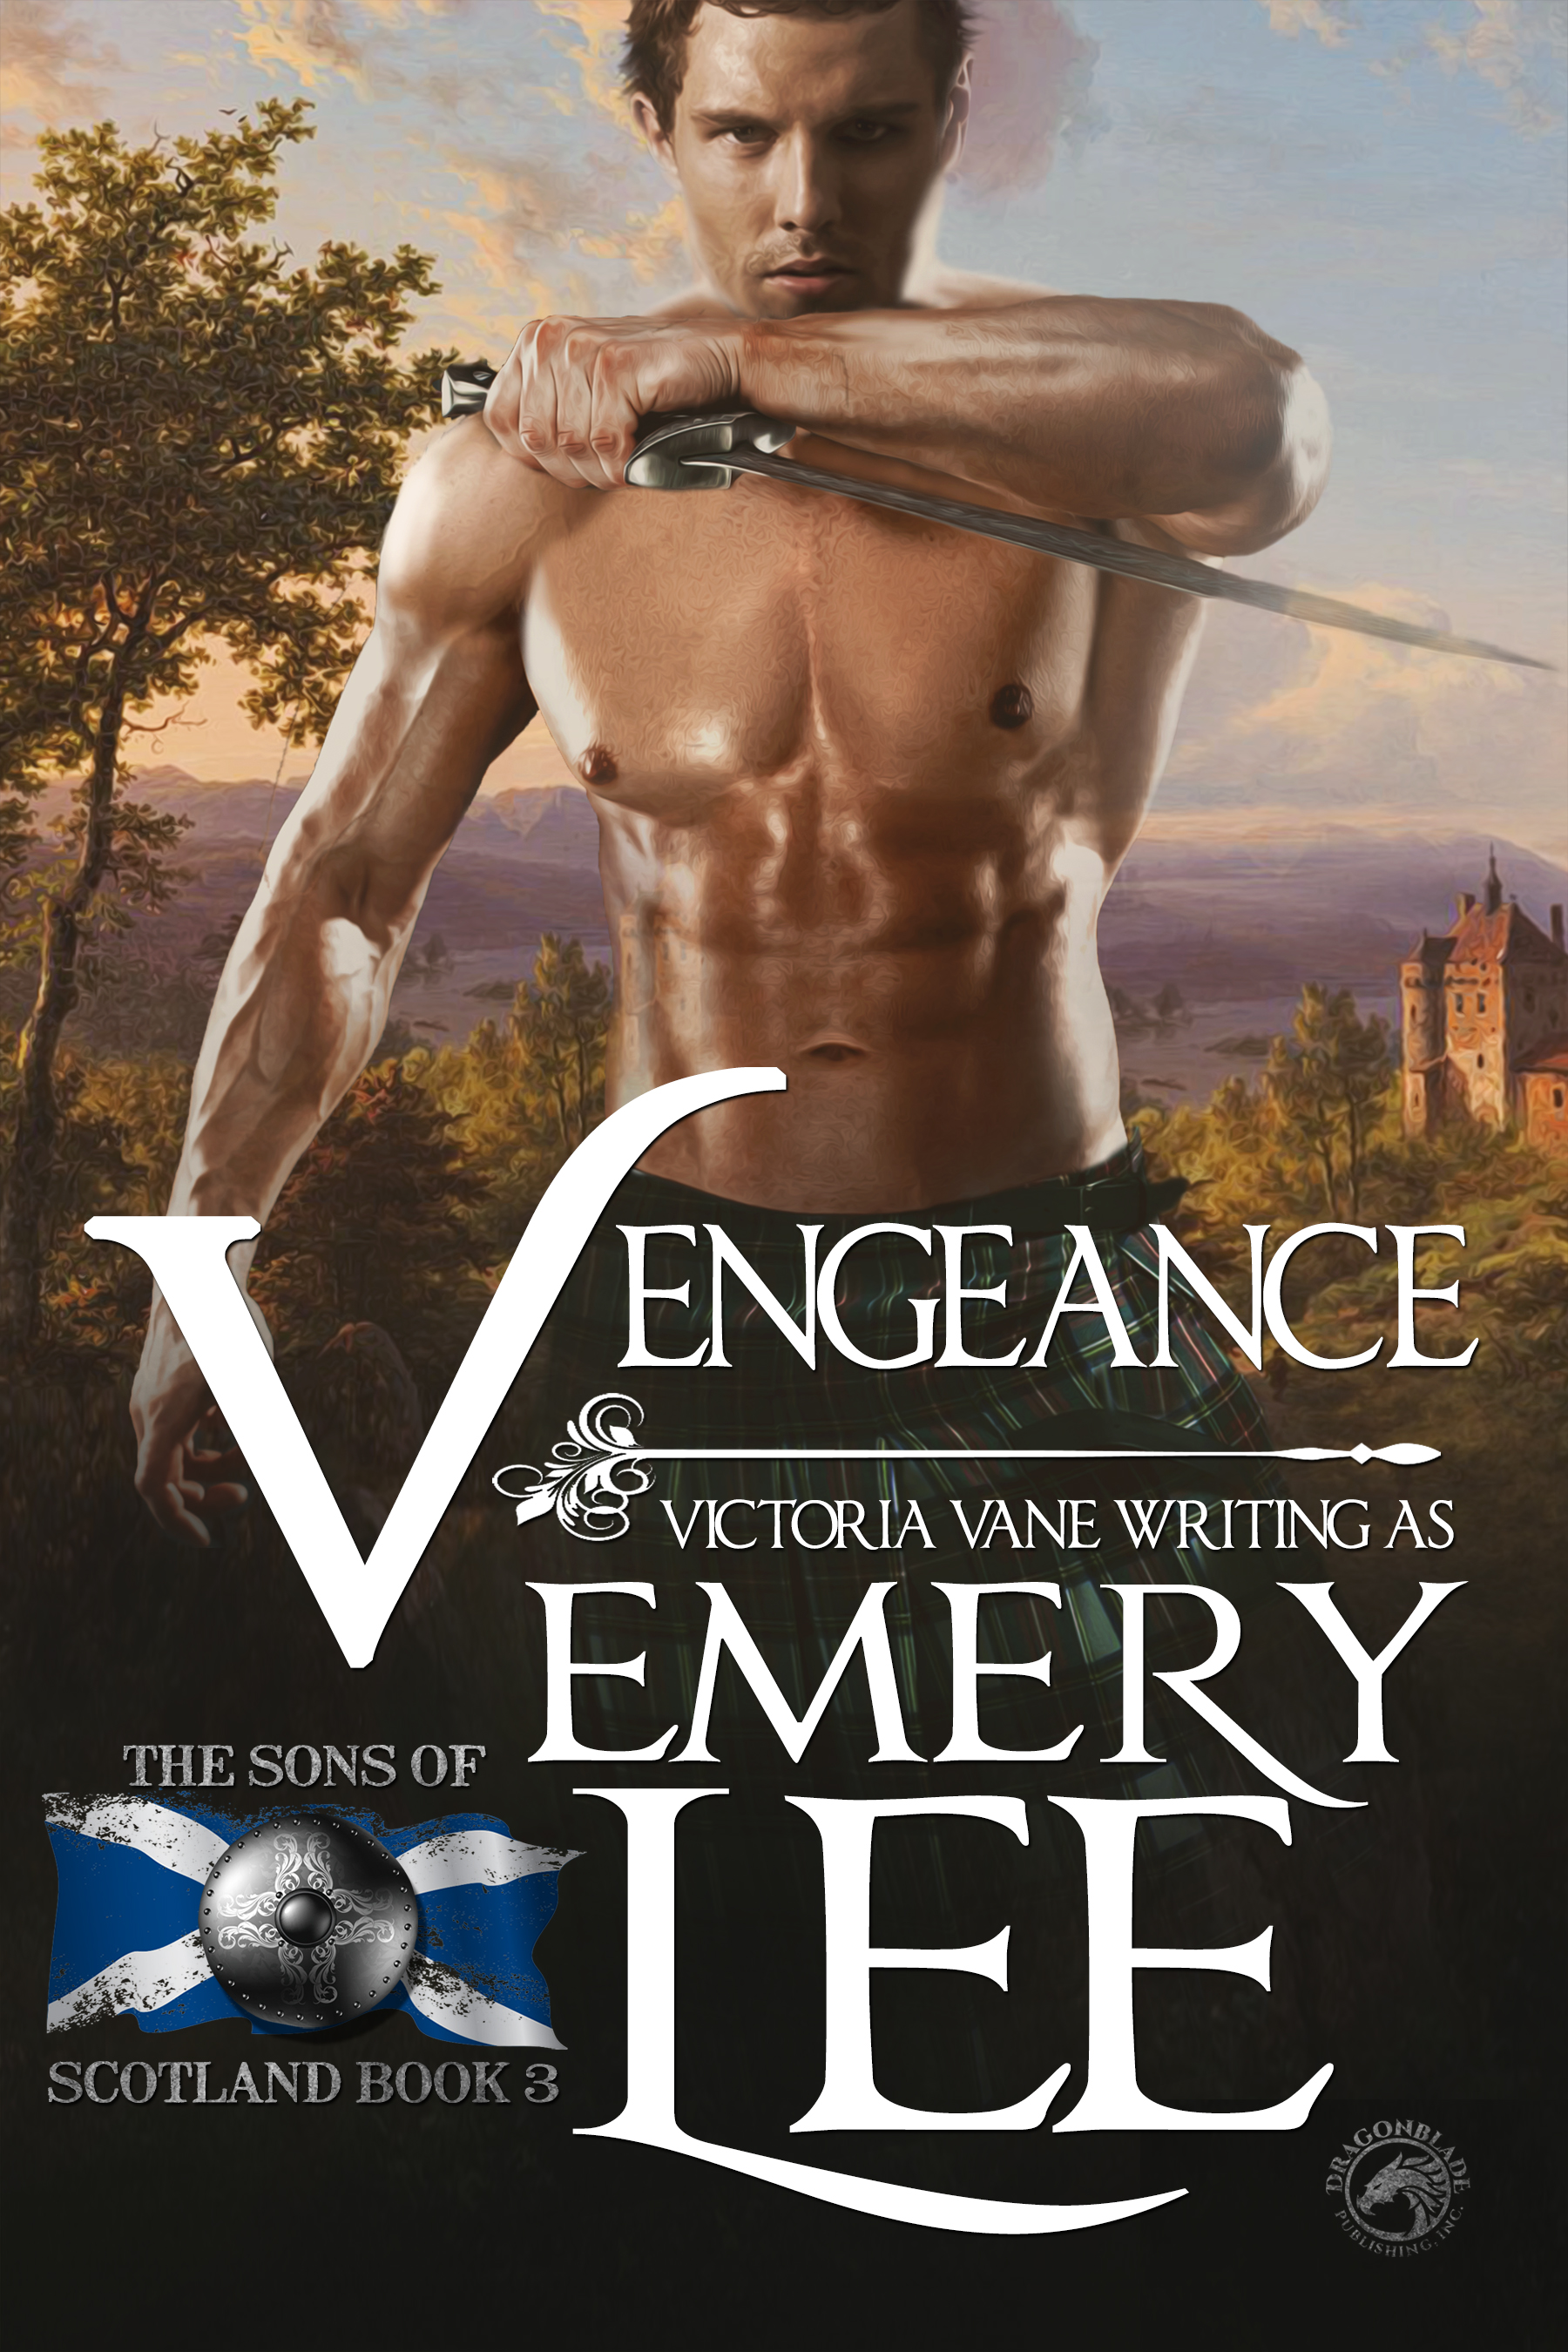 Vengeance: Sons of Scotland #3 Victoria Vane and Emery Lee